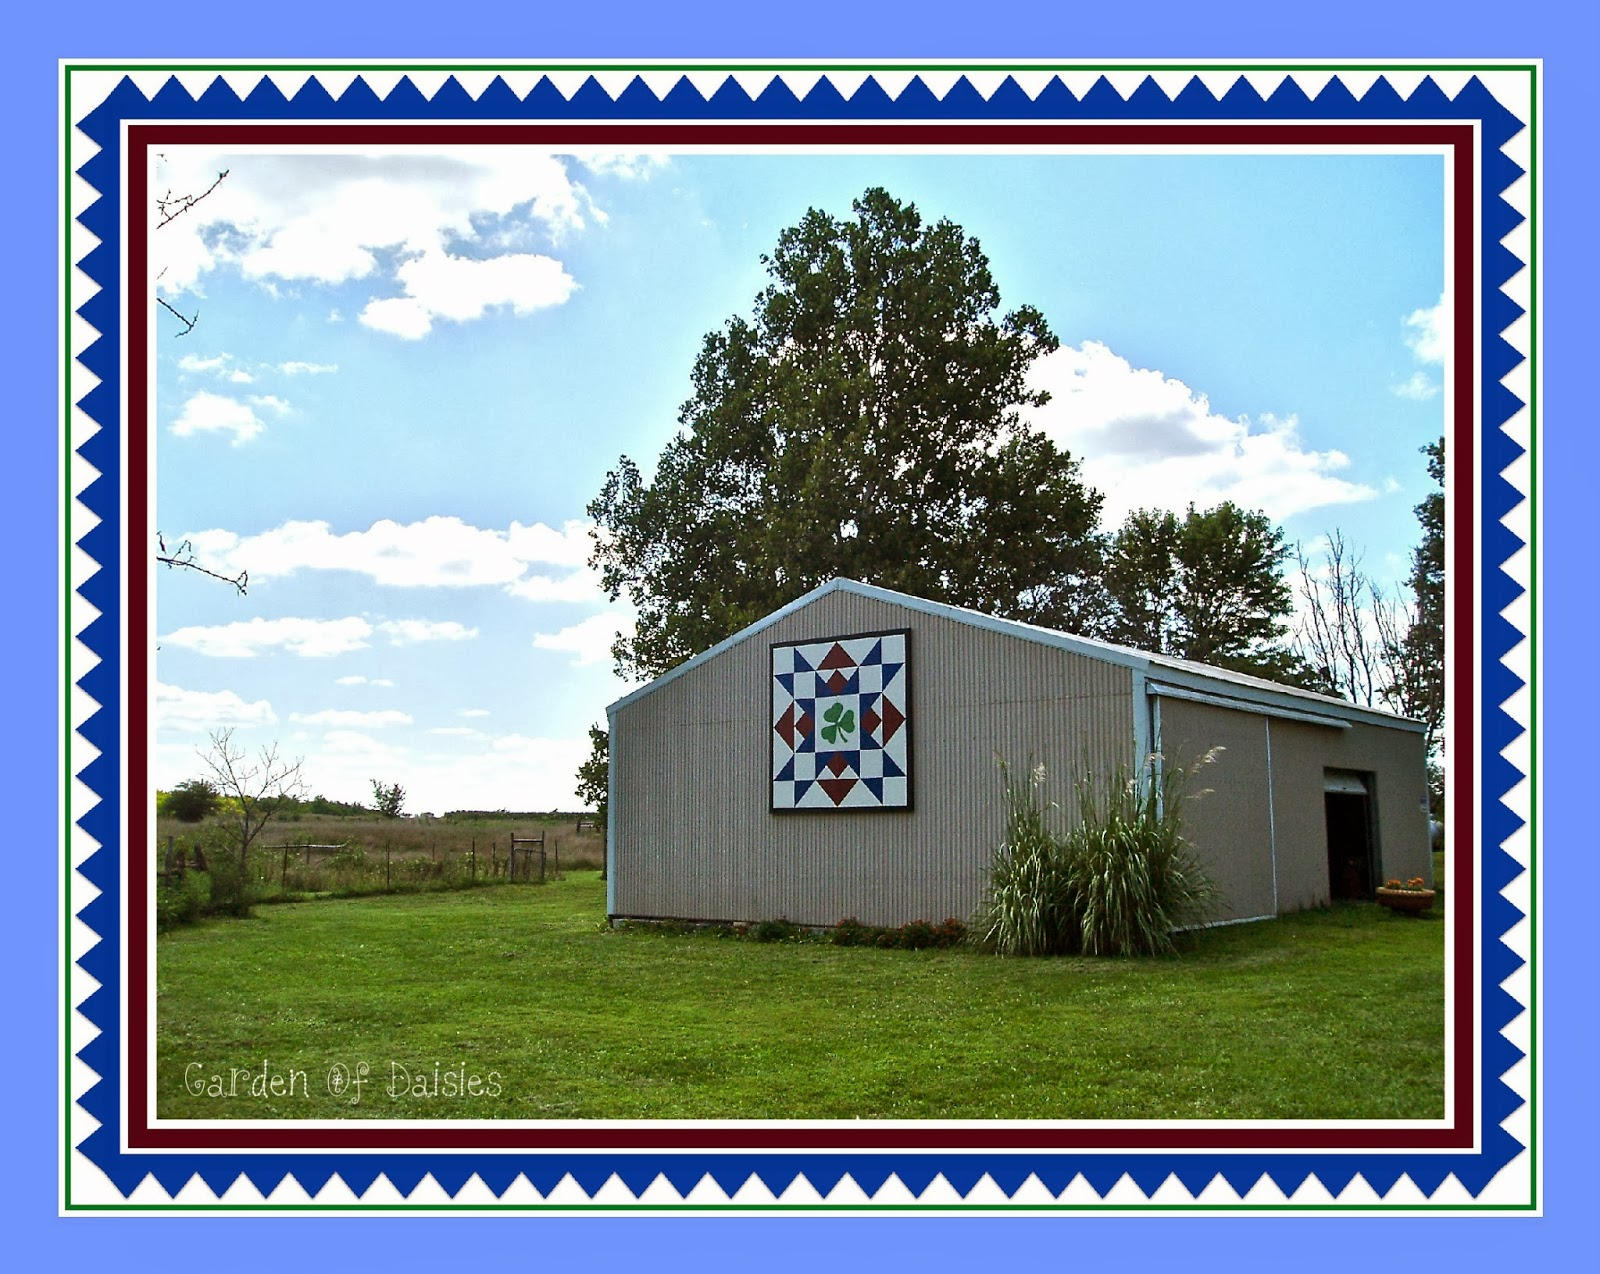 Garden of daisies quilt barns for Garden shed quilting